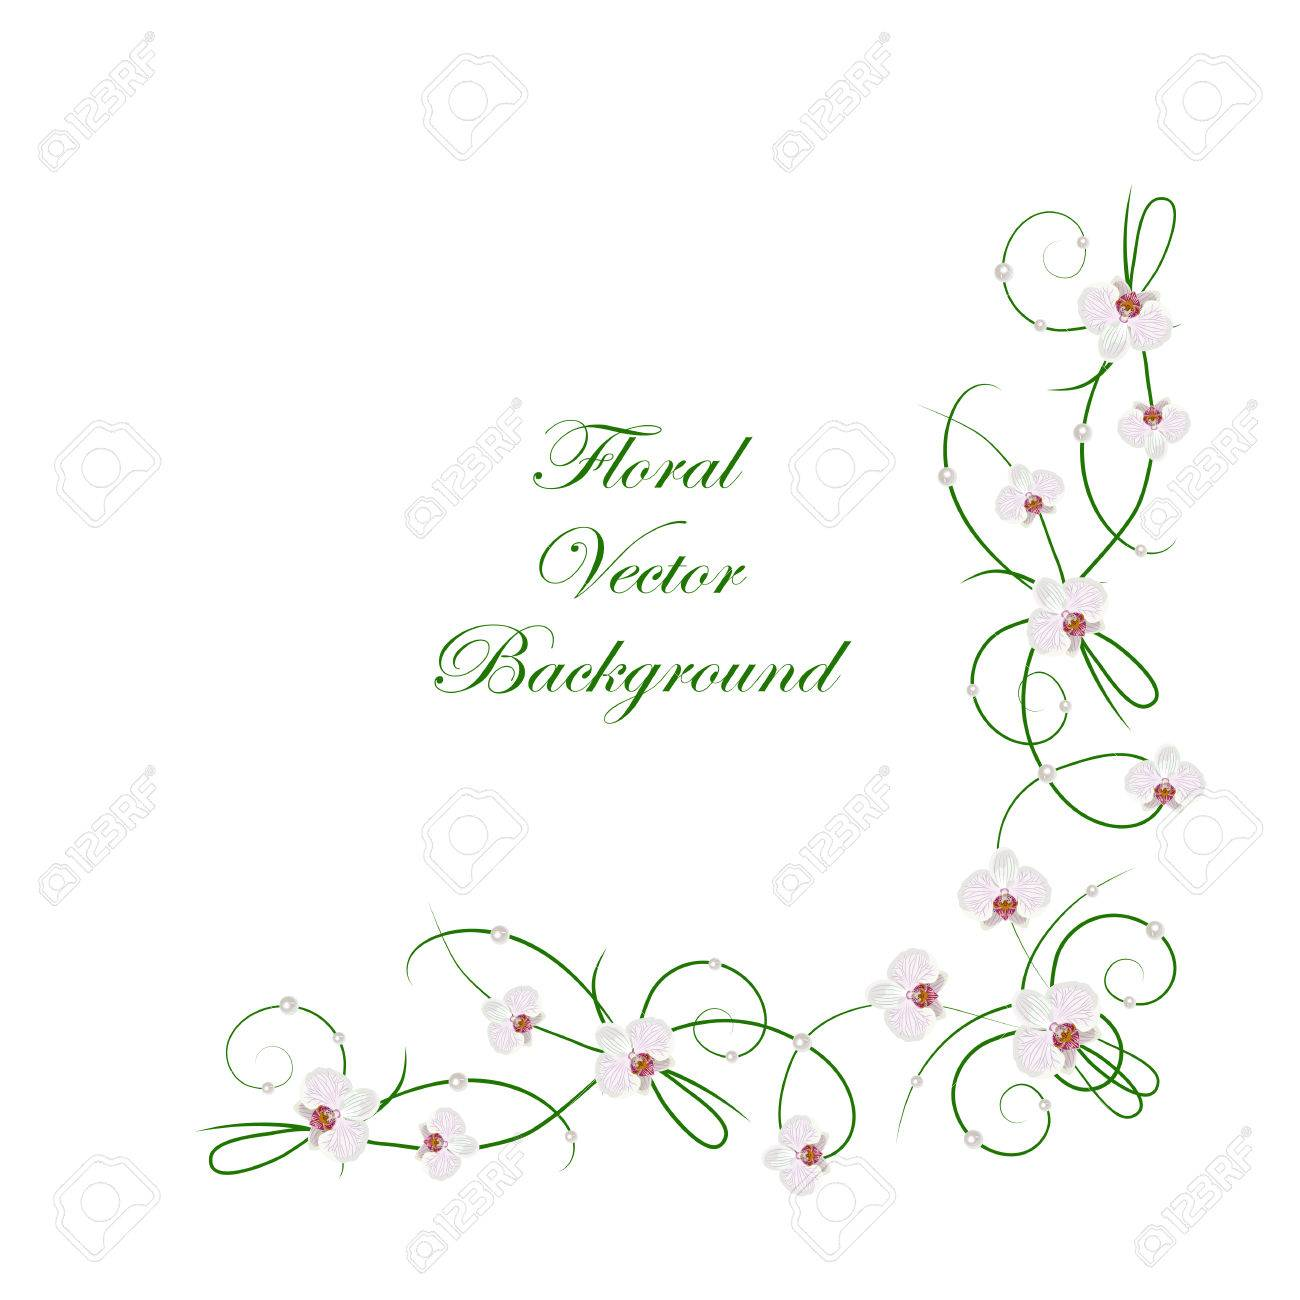 Floral Vector Background. Corner Frame With White Ochid Flowers ...